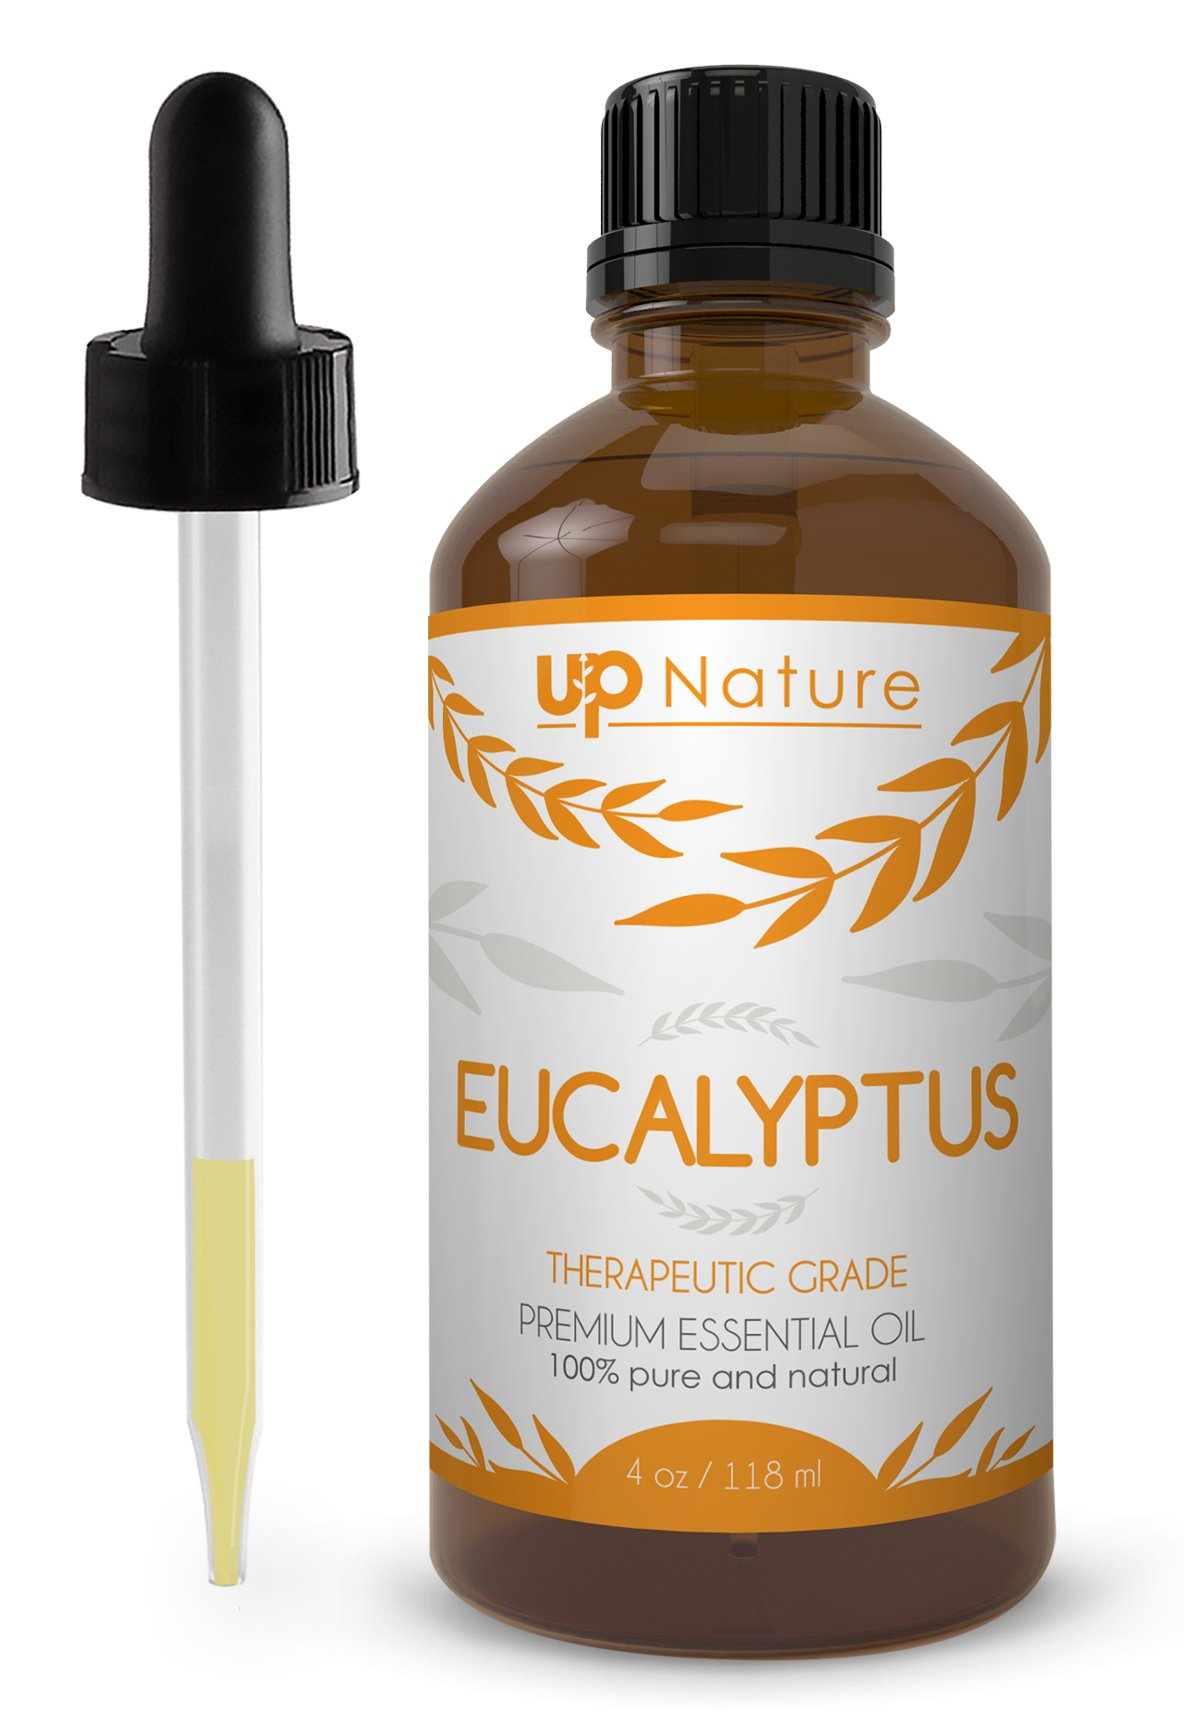 UpNature The Best Eucalyptus Essential Oil 4 OZ - UpNature - 100% Pure & Natural, Premium Therapeutic Aromatherapy Grade - With Glass Dropper - Use It To Breathe Easy & Sleep Longer. Perfect For Sauna